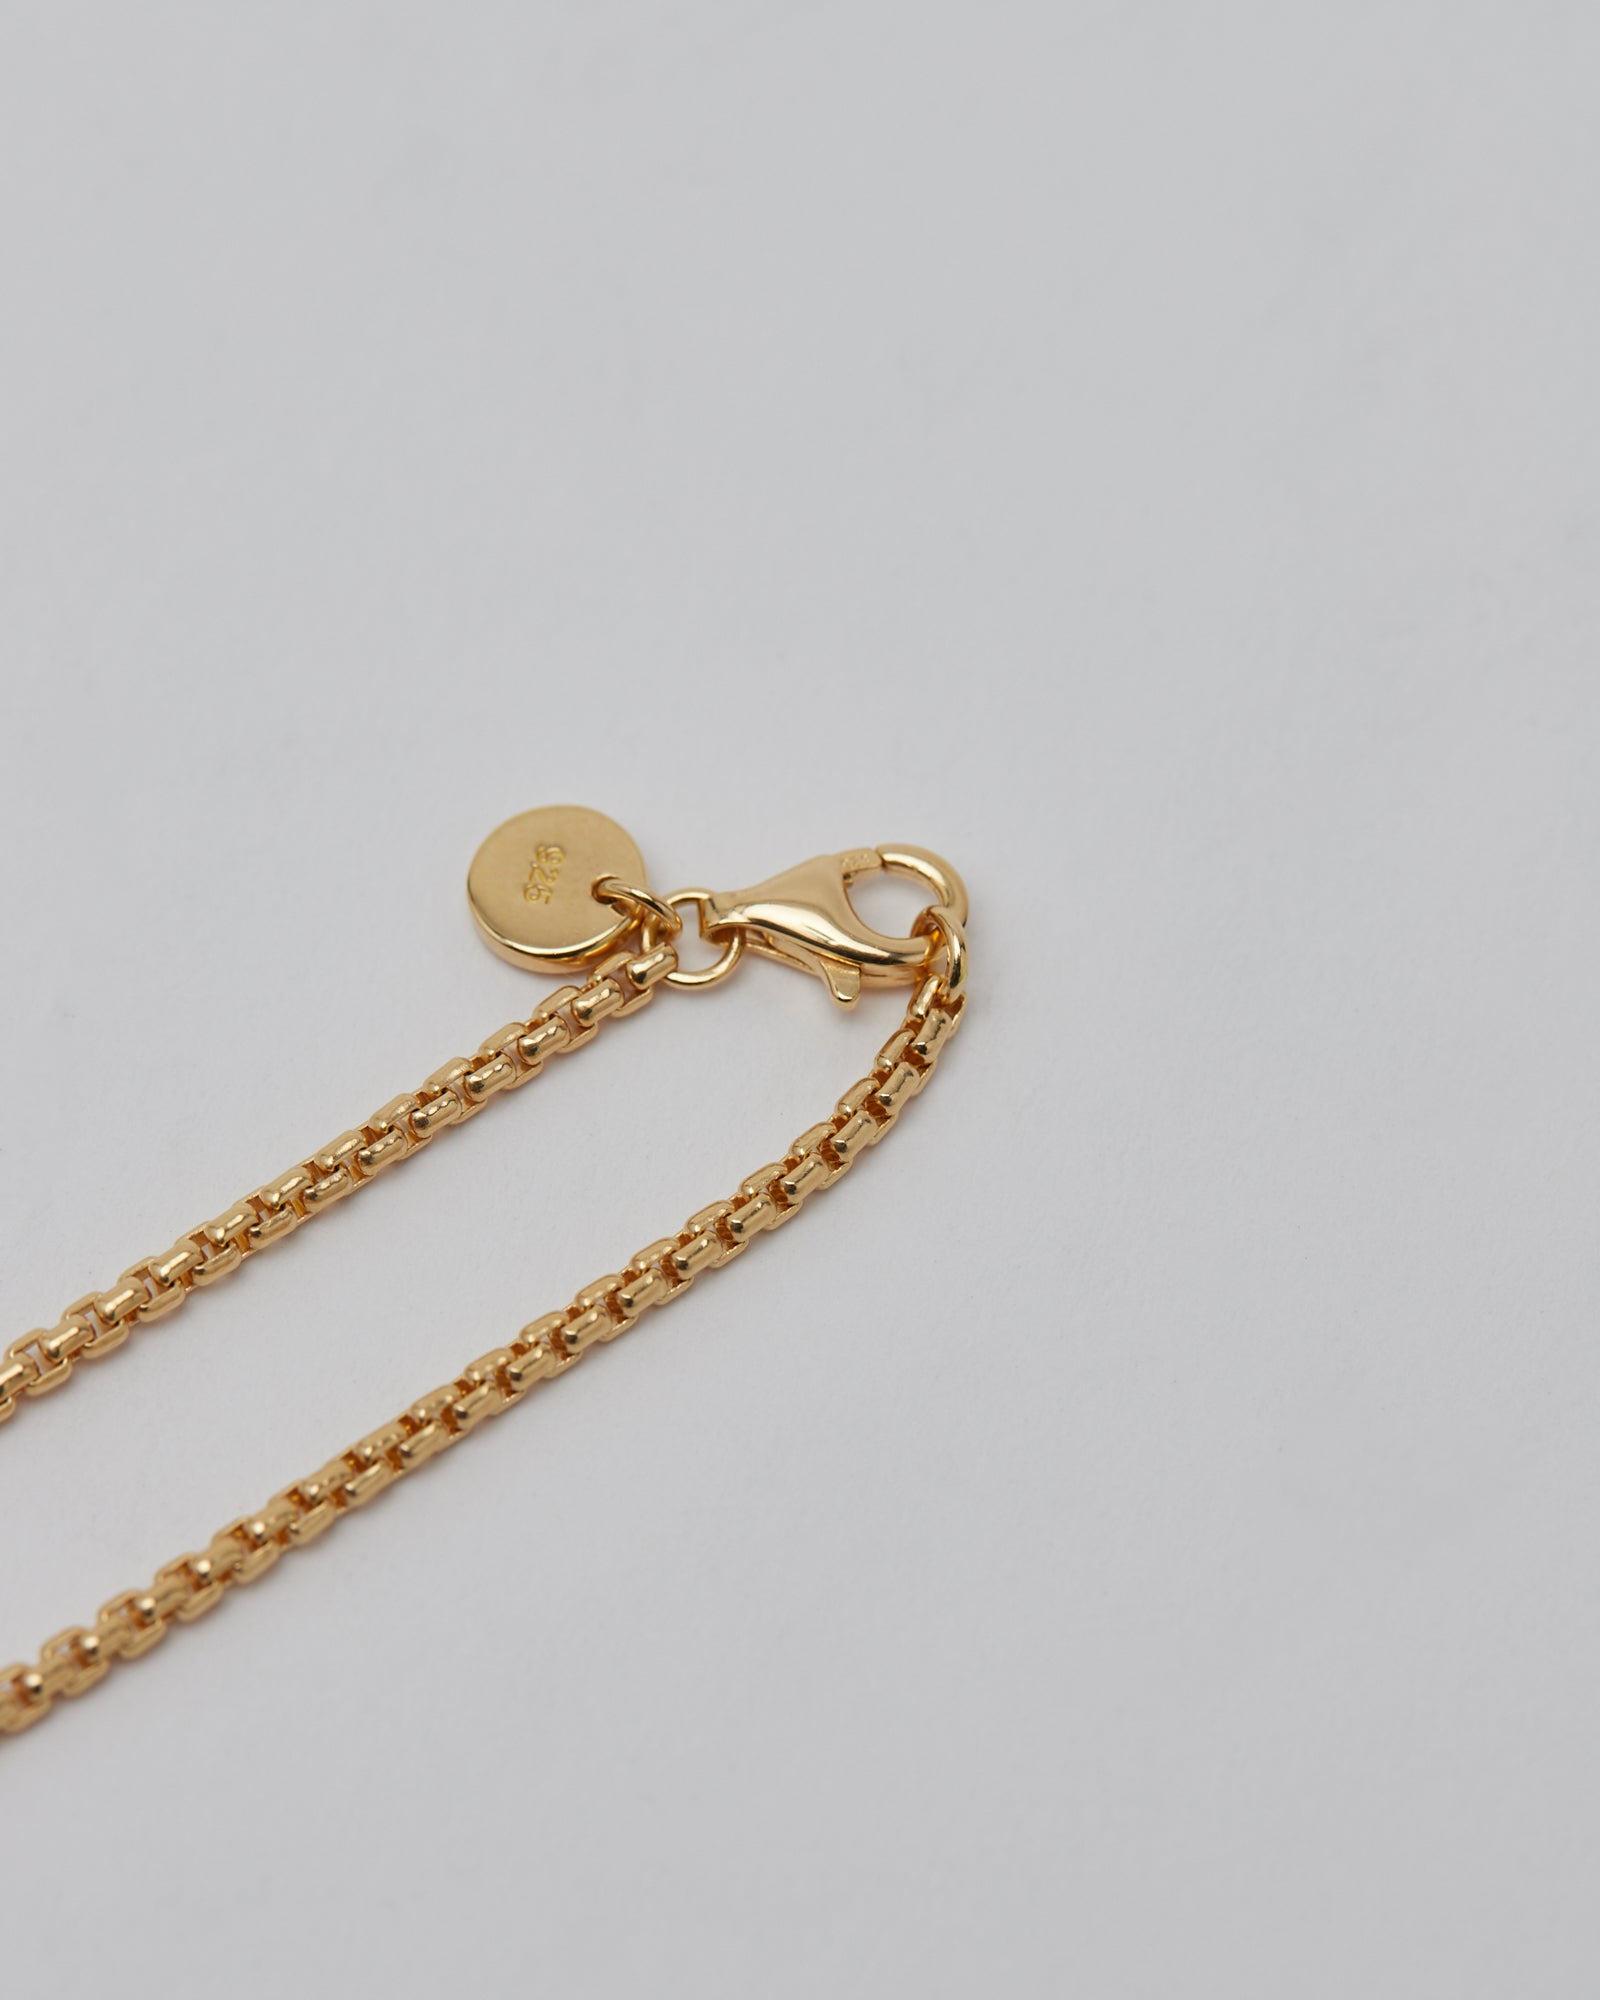 Venetian Chain in Gold 18 in